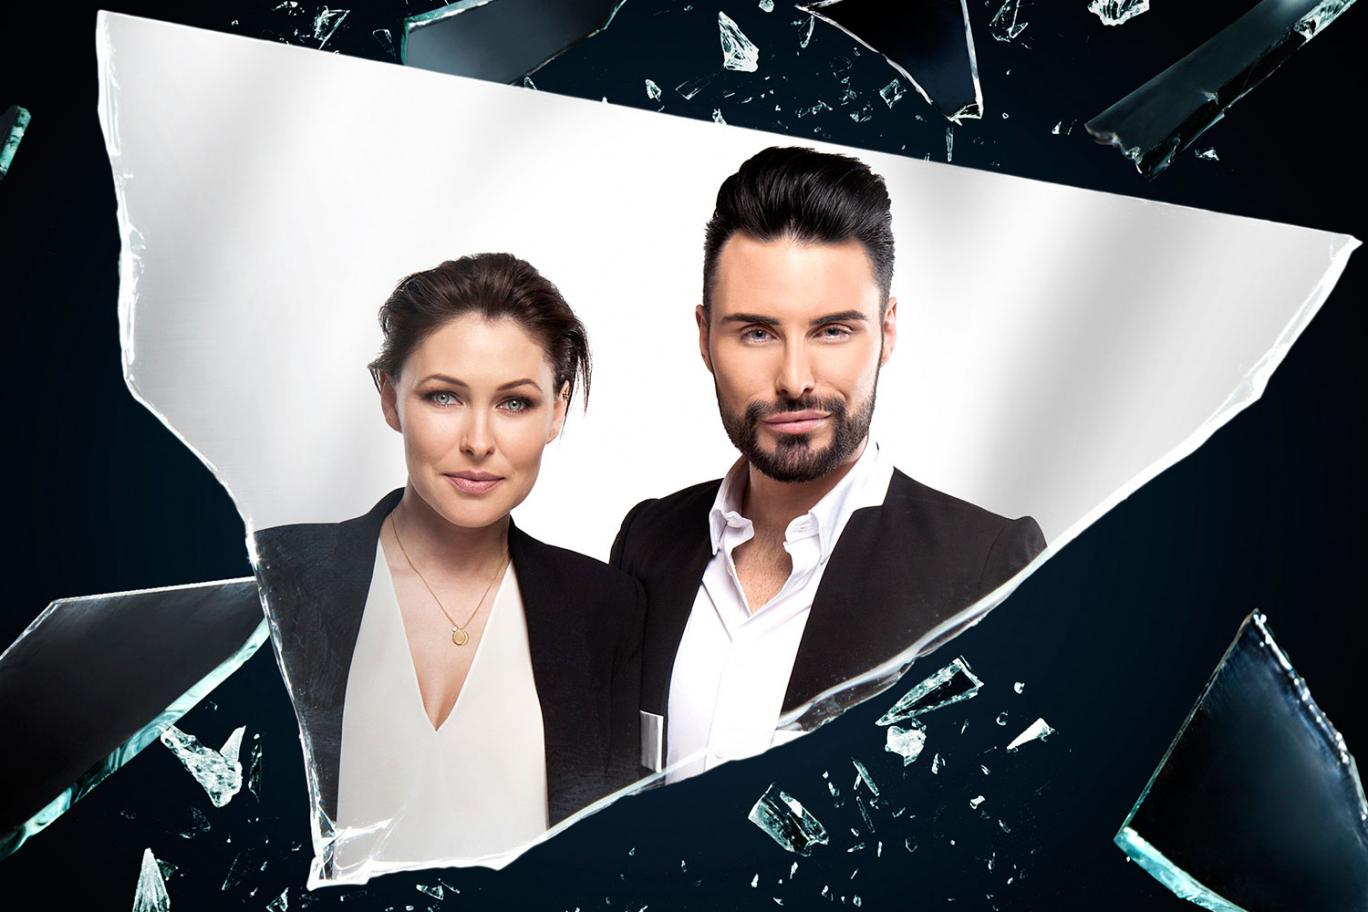 The new Celebrity Big Brother eye has been revealed and promises an 'explosive' new series